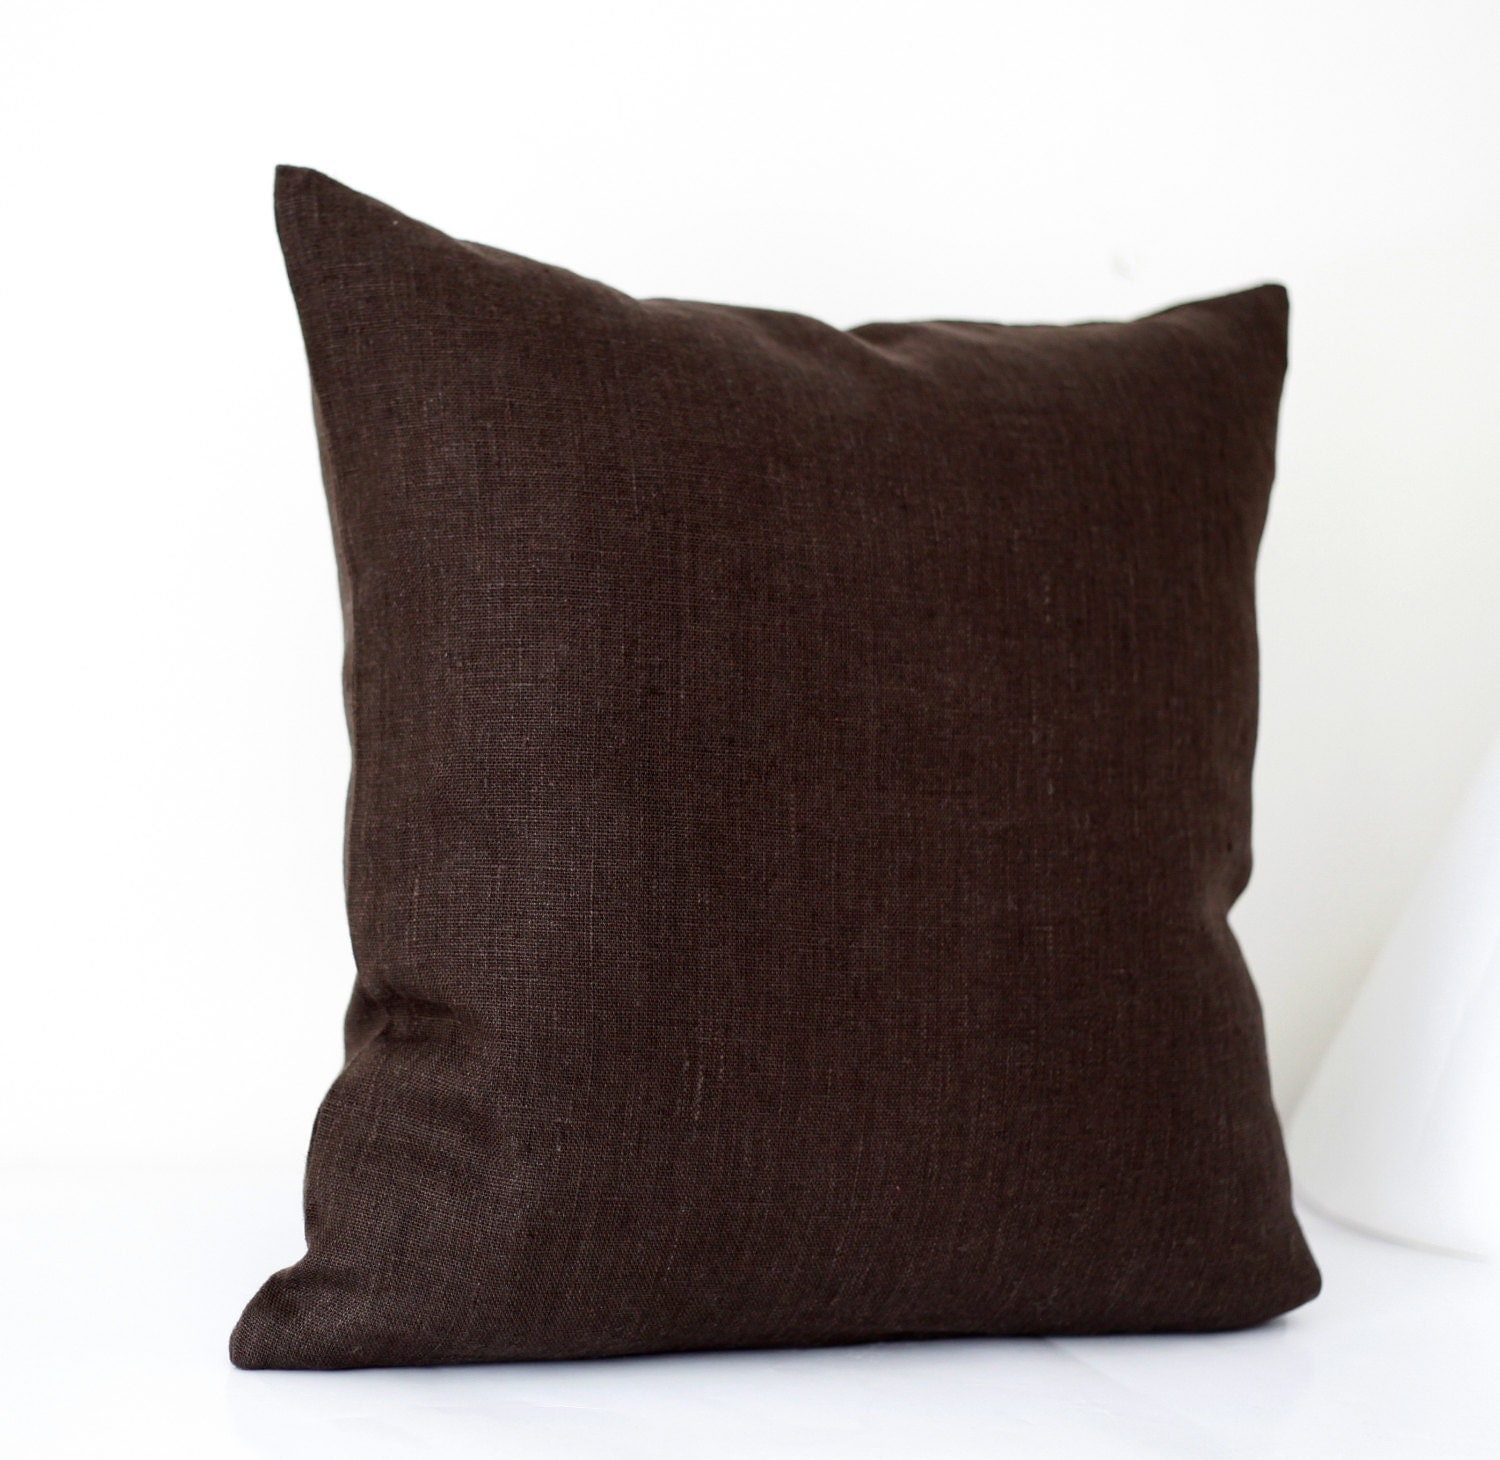 Decorative Pillow Brown : Linen sham chocolate brown throw pillows pillow by pillowlink